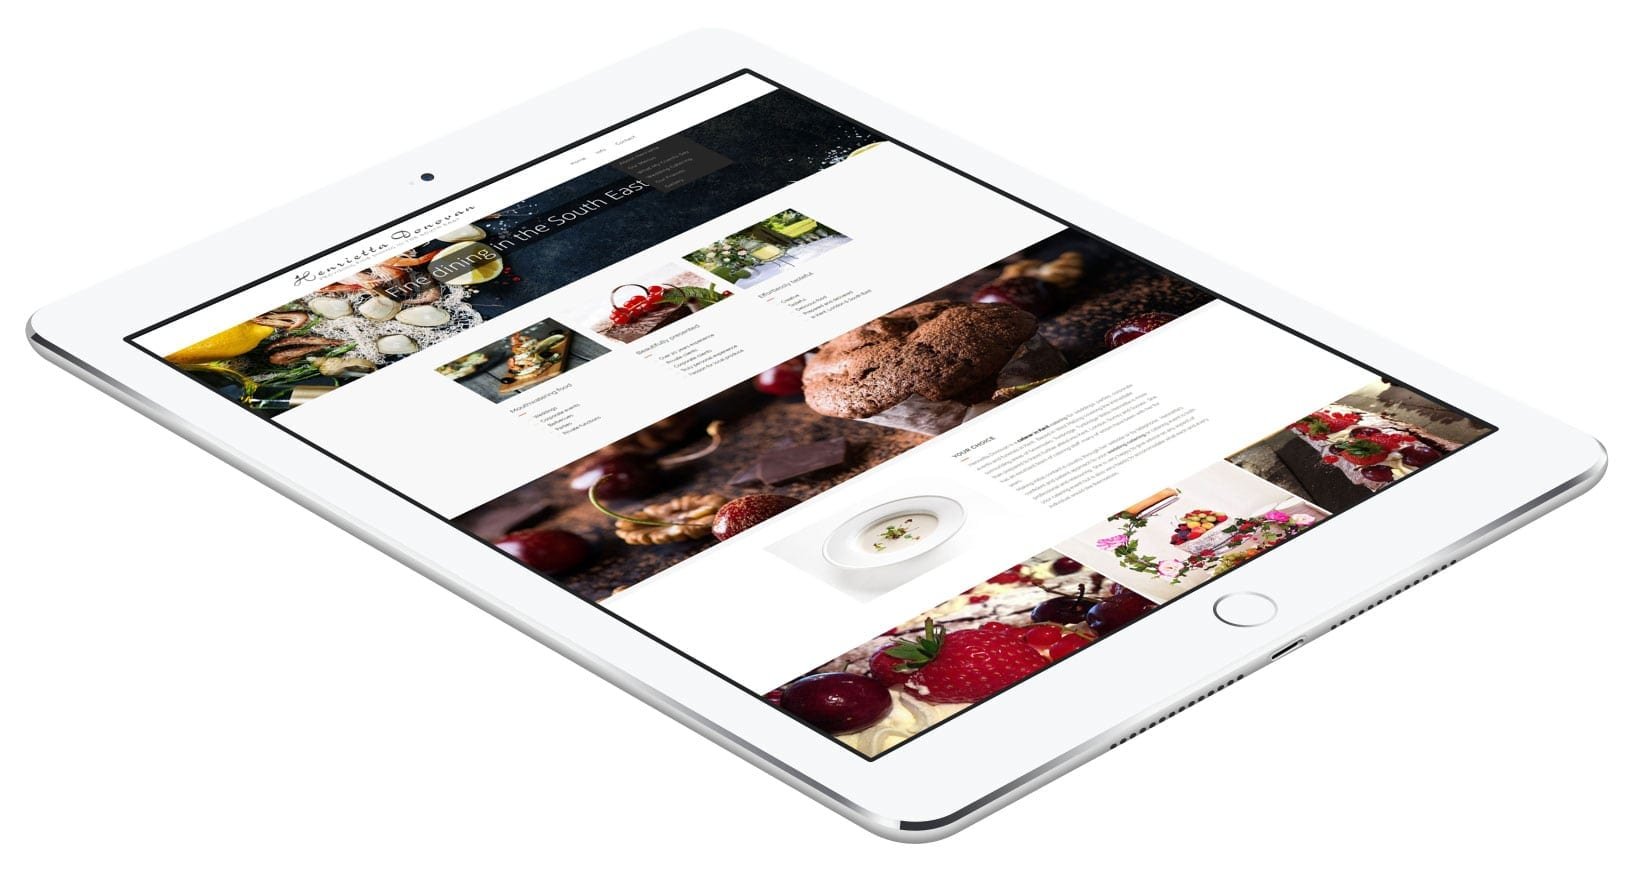 Best food web design inspiration